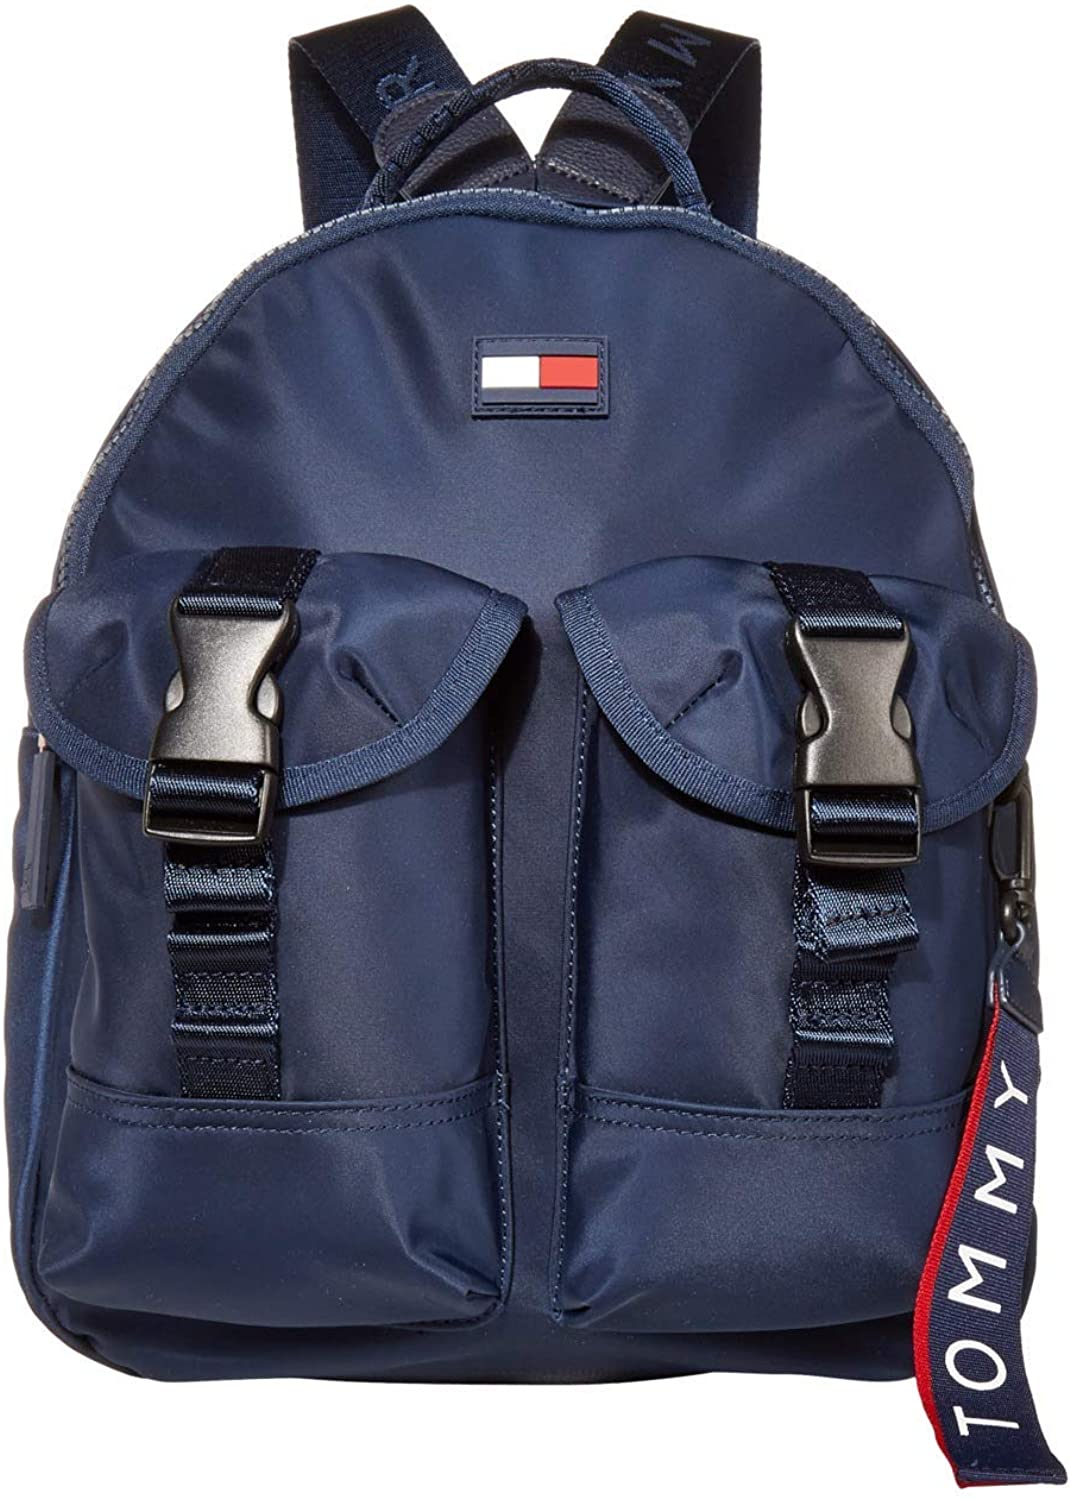 Tommy Hilfiger Lola 1.5 - Dome Backpack - Nylon